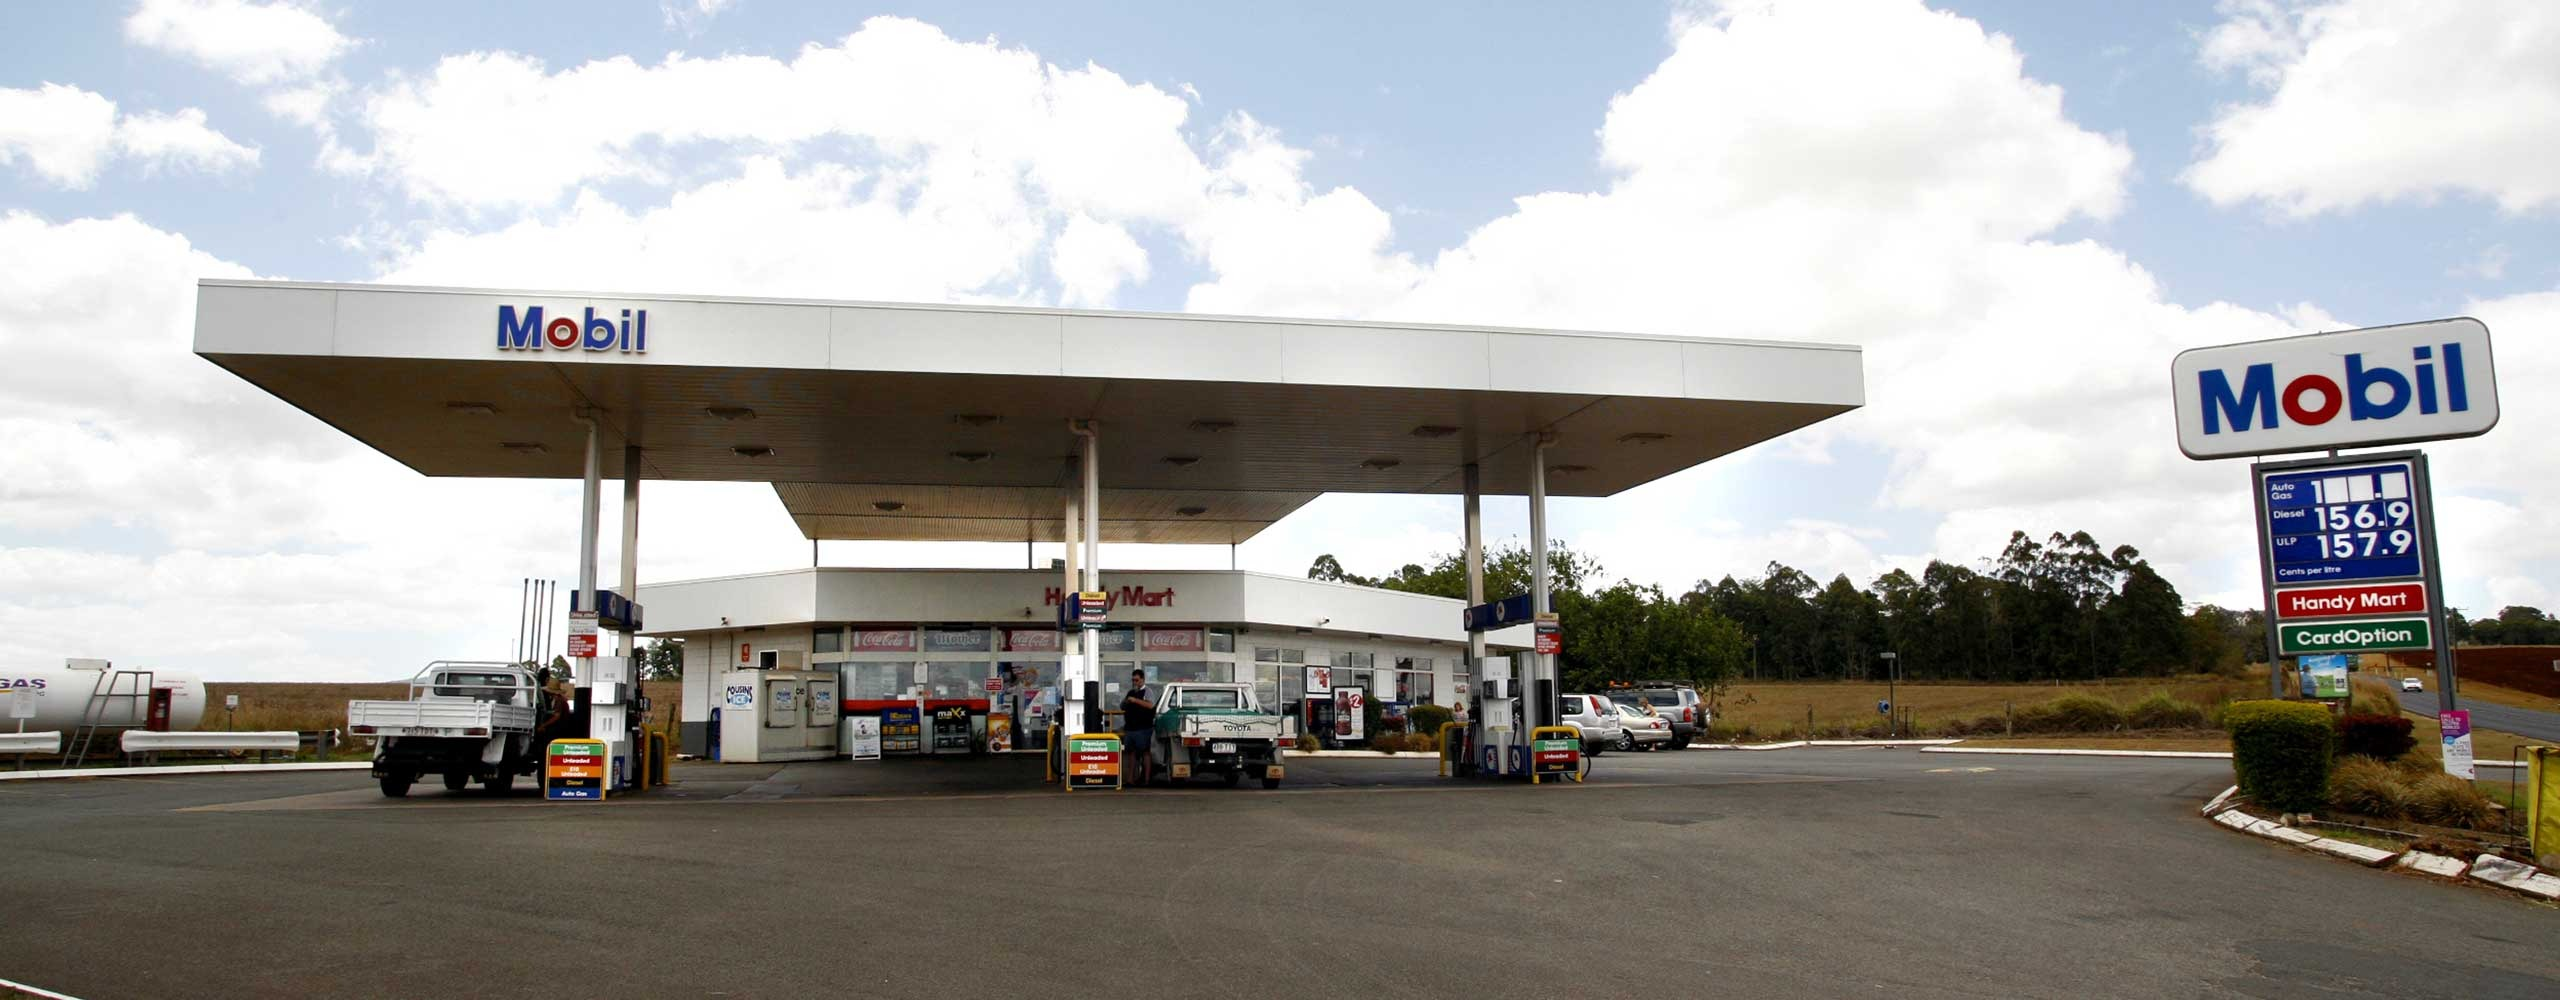 Mobil atherton fuel station trinity petroleum for The atherton